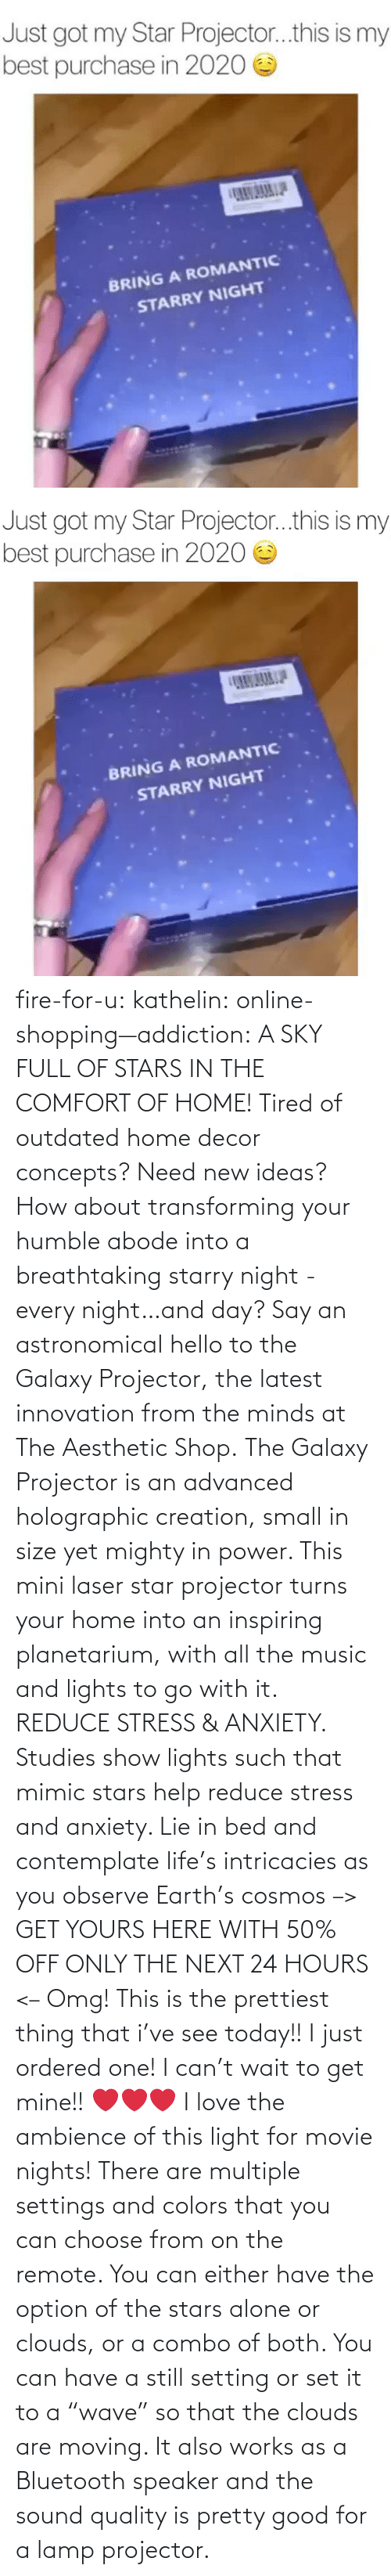 "bed: fire-for-u:  kathelin: online-shopping—addiction:  A SKY FULL OF STARS IN THE COMFORT OF HOME! Tired of outdated home decor concepts? Need new ideas? How about transforming your humble abode into a breathtaking starry night - every night…and day? Say an astronomical hello to the Galaxy Projector, the latest innovation from the minds at The Aesthetic Shop. The Galaxy Projector is an advanced holographic creation, small in size yet mighty in power. This mini laser star projector turns your home into an inspiring planetarium, with all the music and lights to go with it. REDUCE STRESS & ANXIETY. Studies show lights such that mimic stars help reduce stress and anxiety. Lie in bed and contemplate life's intricacies as you observe Earth's cosmos  –> GET YOURS HERE WITH 50% OFF ONLY THE NEXT 24 HOURS <–   Omg! This is the prettiest thing that i've see today!! I just ordered one! I can't wait to get mine!! ❤️️❤️️❤️️  I love the ambience of this light for movie nights! There are multiple settings and colors that you can choose from on the remote. You can either have the option of the stars alone or clouds, or a combo of both. You can have a still setting or set it to a ""wave"" so that the clouds are moving. It also works as a Bluetooth speaker and the sound quality is pretty good for a lamp projector."